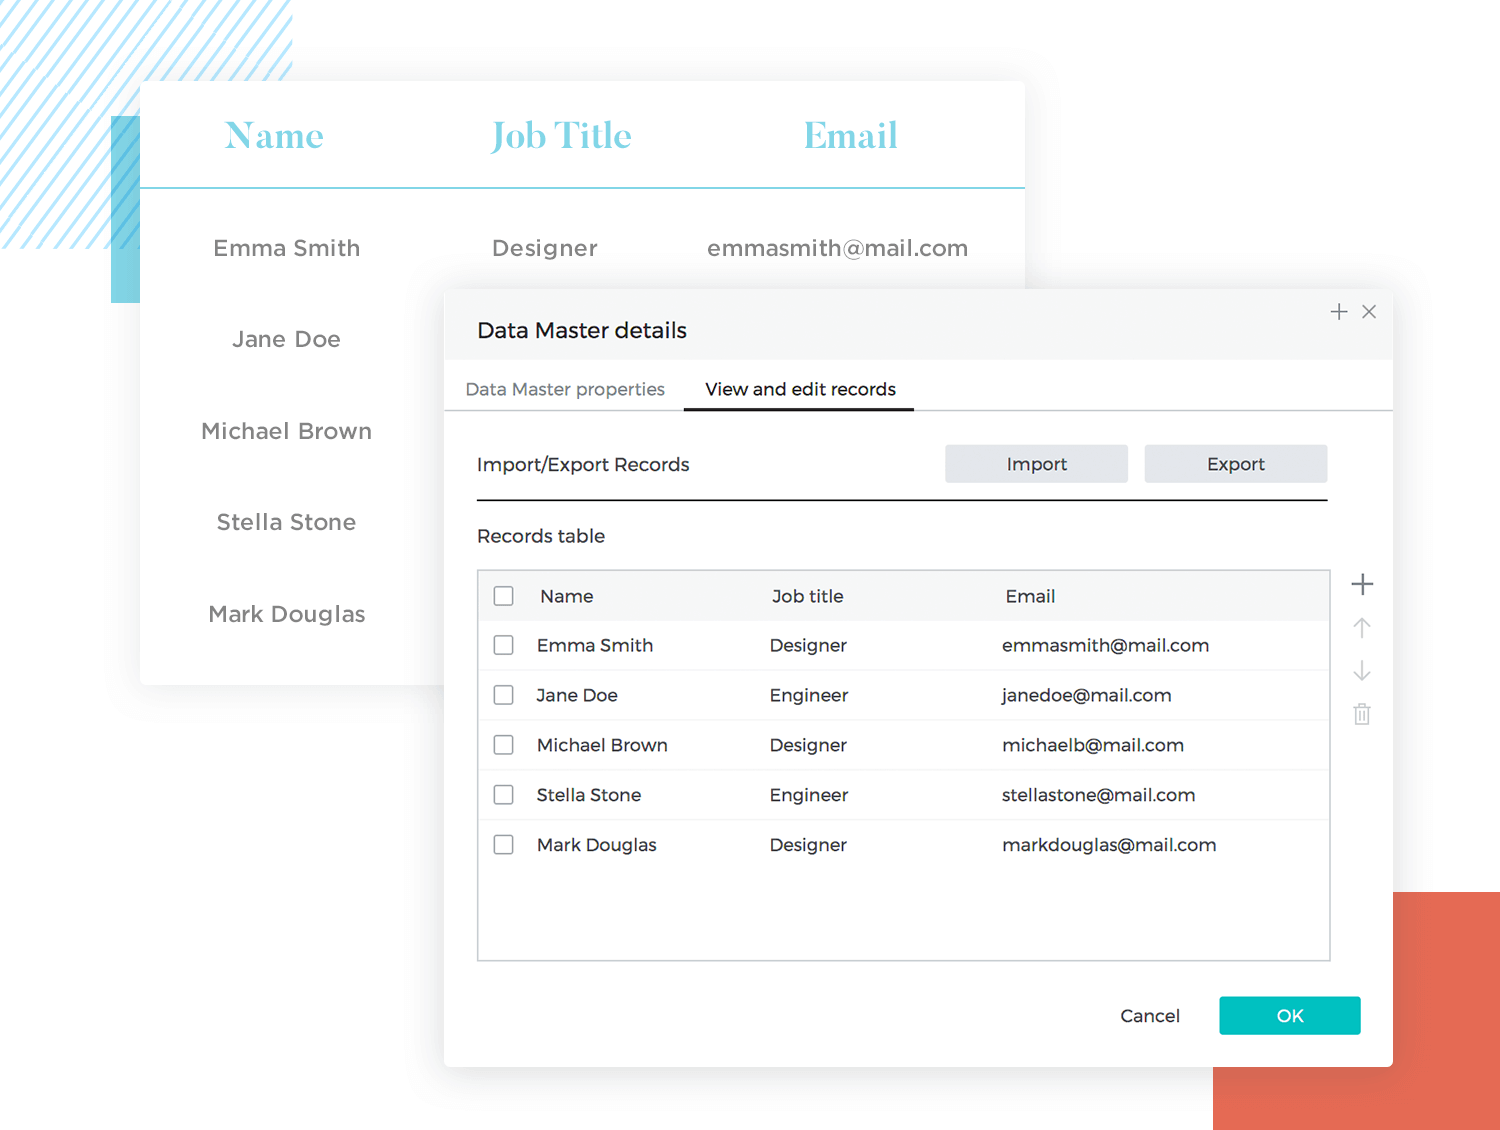 List UI design - create lists with data masters in Justinmind